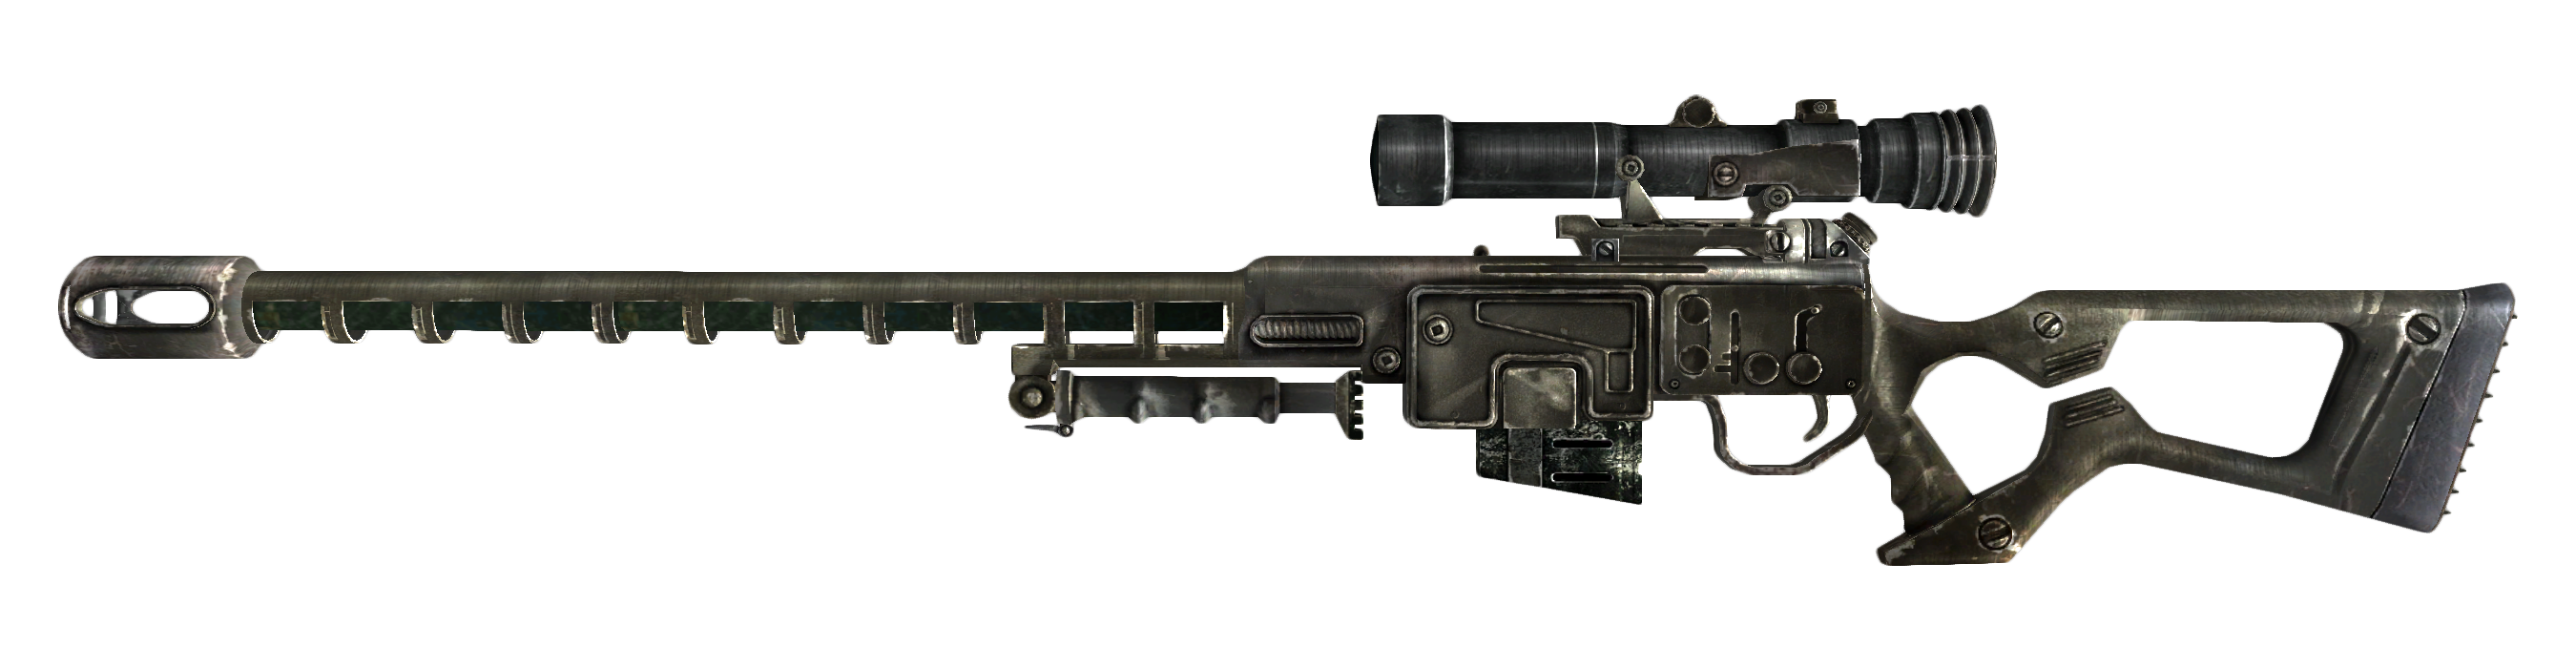 Sniper png. Ghost warrior rifle cheytac